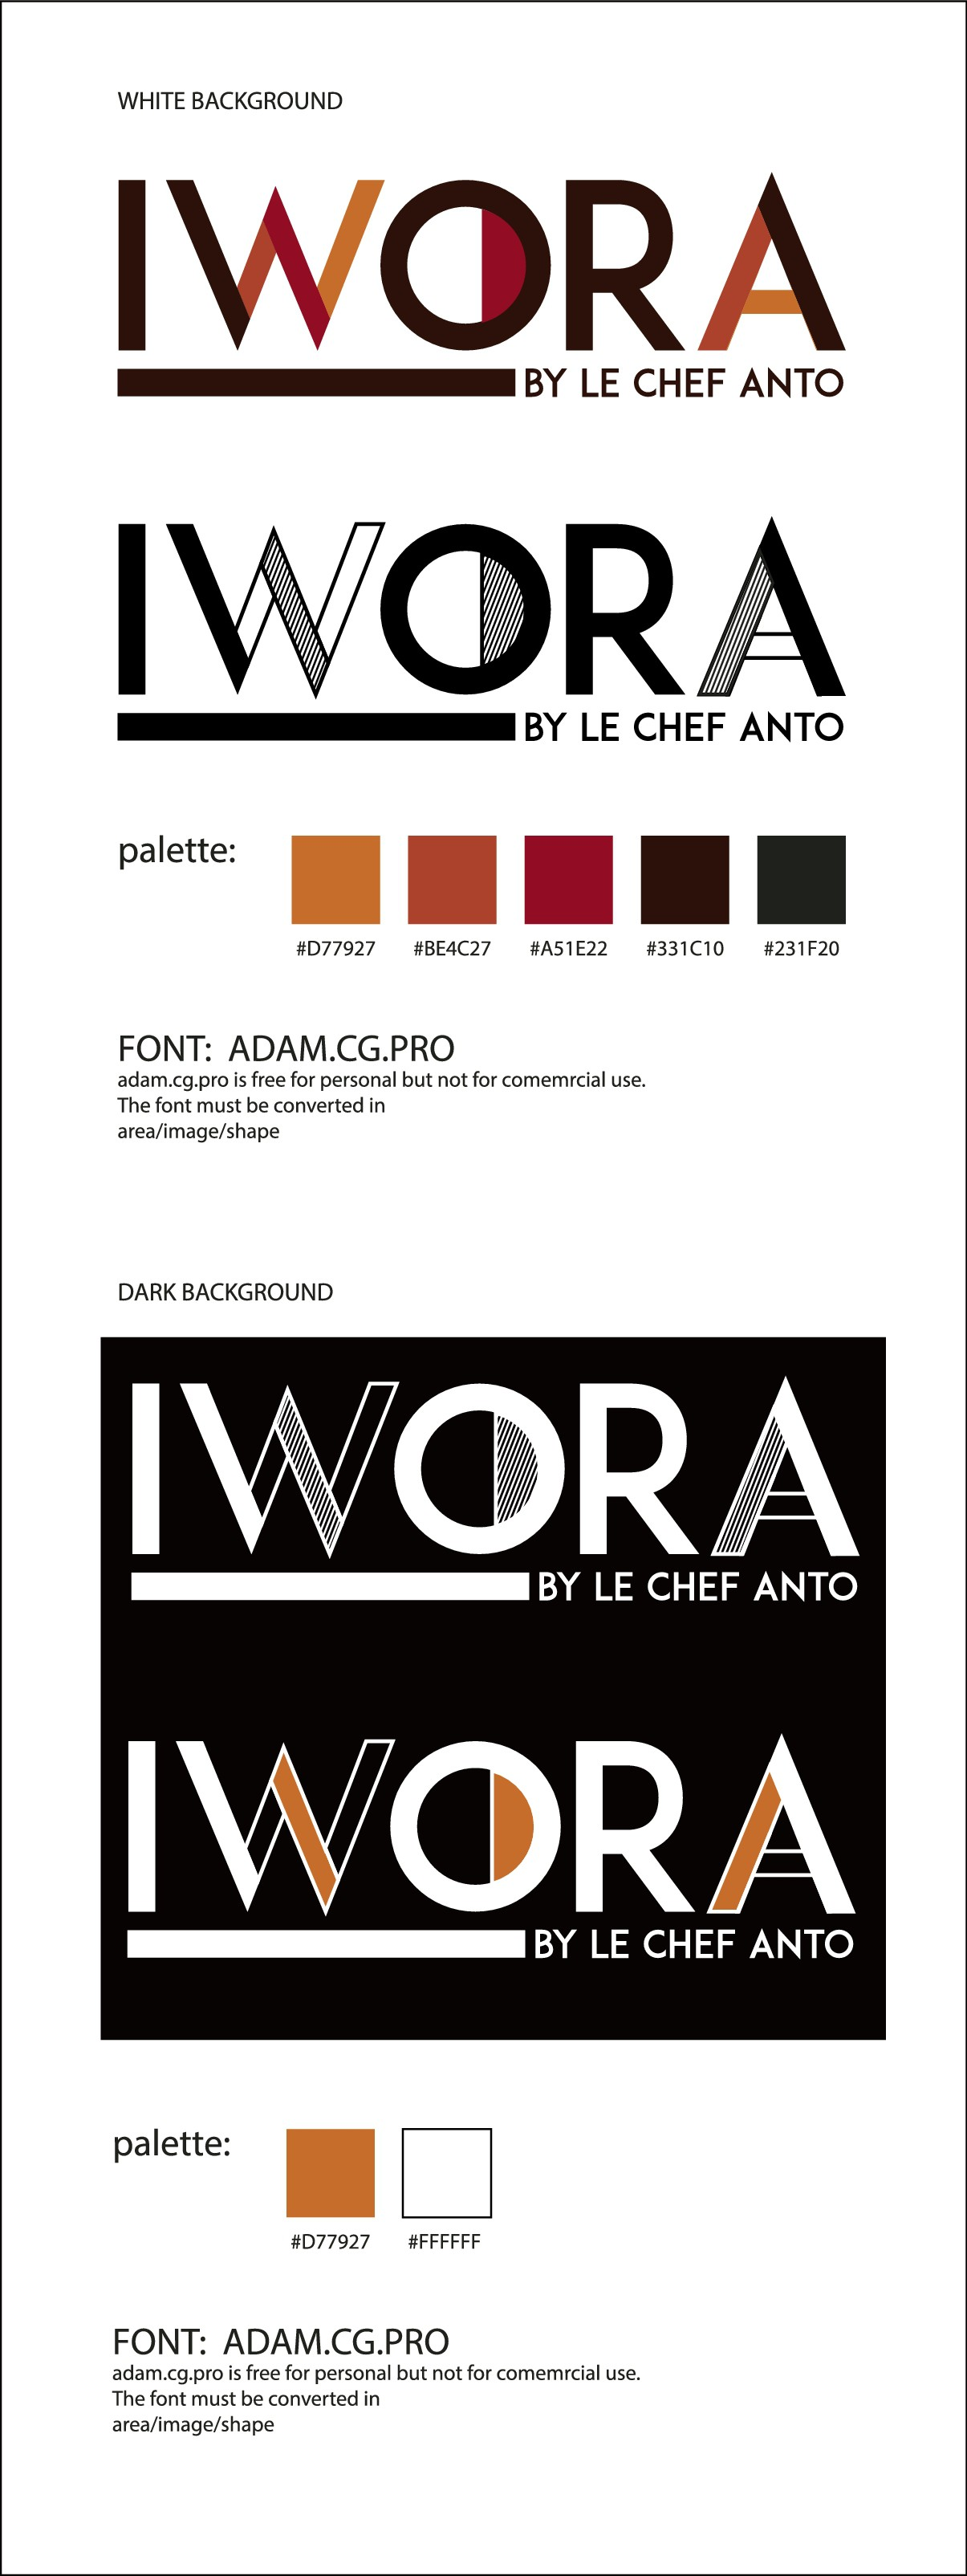 IWORA - By Le Chef Anto